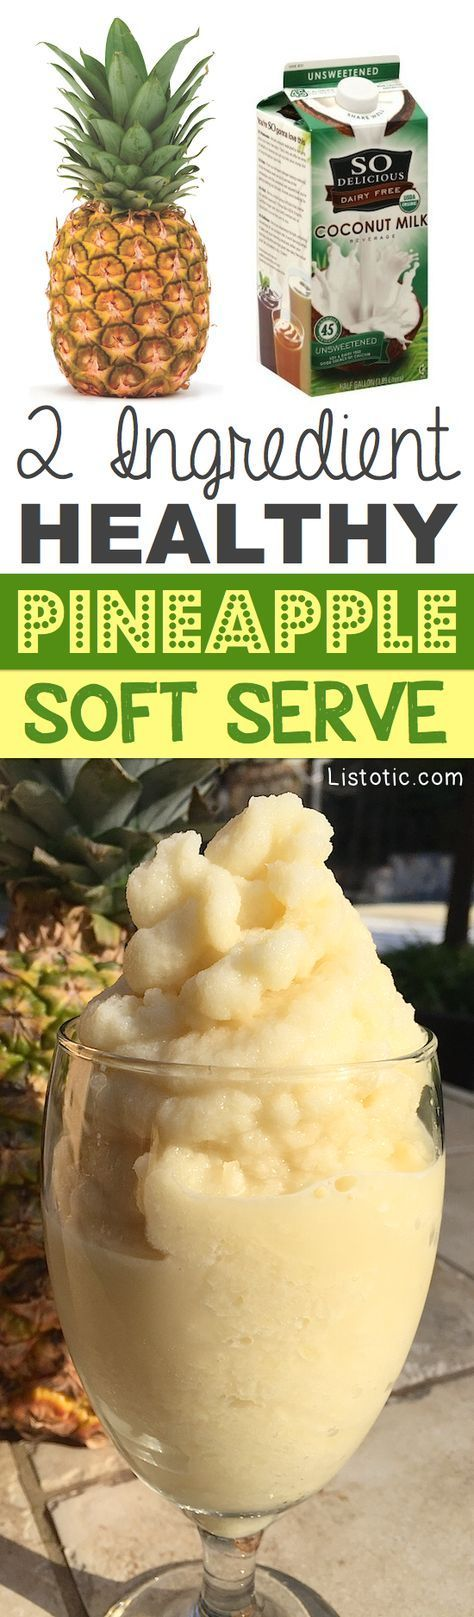 A 2 Ingredient, healthy pineapple soft serve like treat! This recipe is similar to a smoothie but thicker and creamier. The perfect guilt-free dessert!